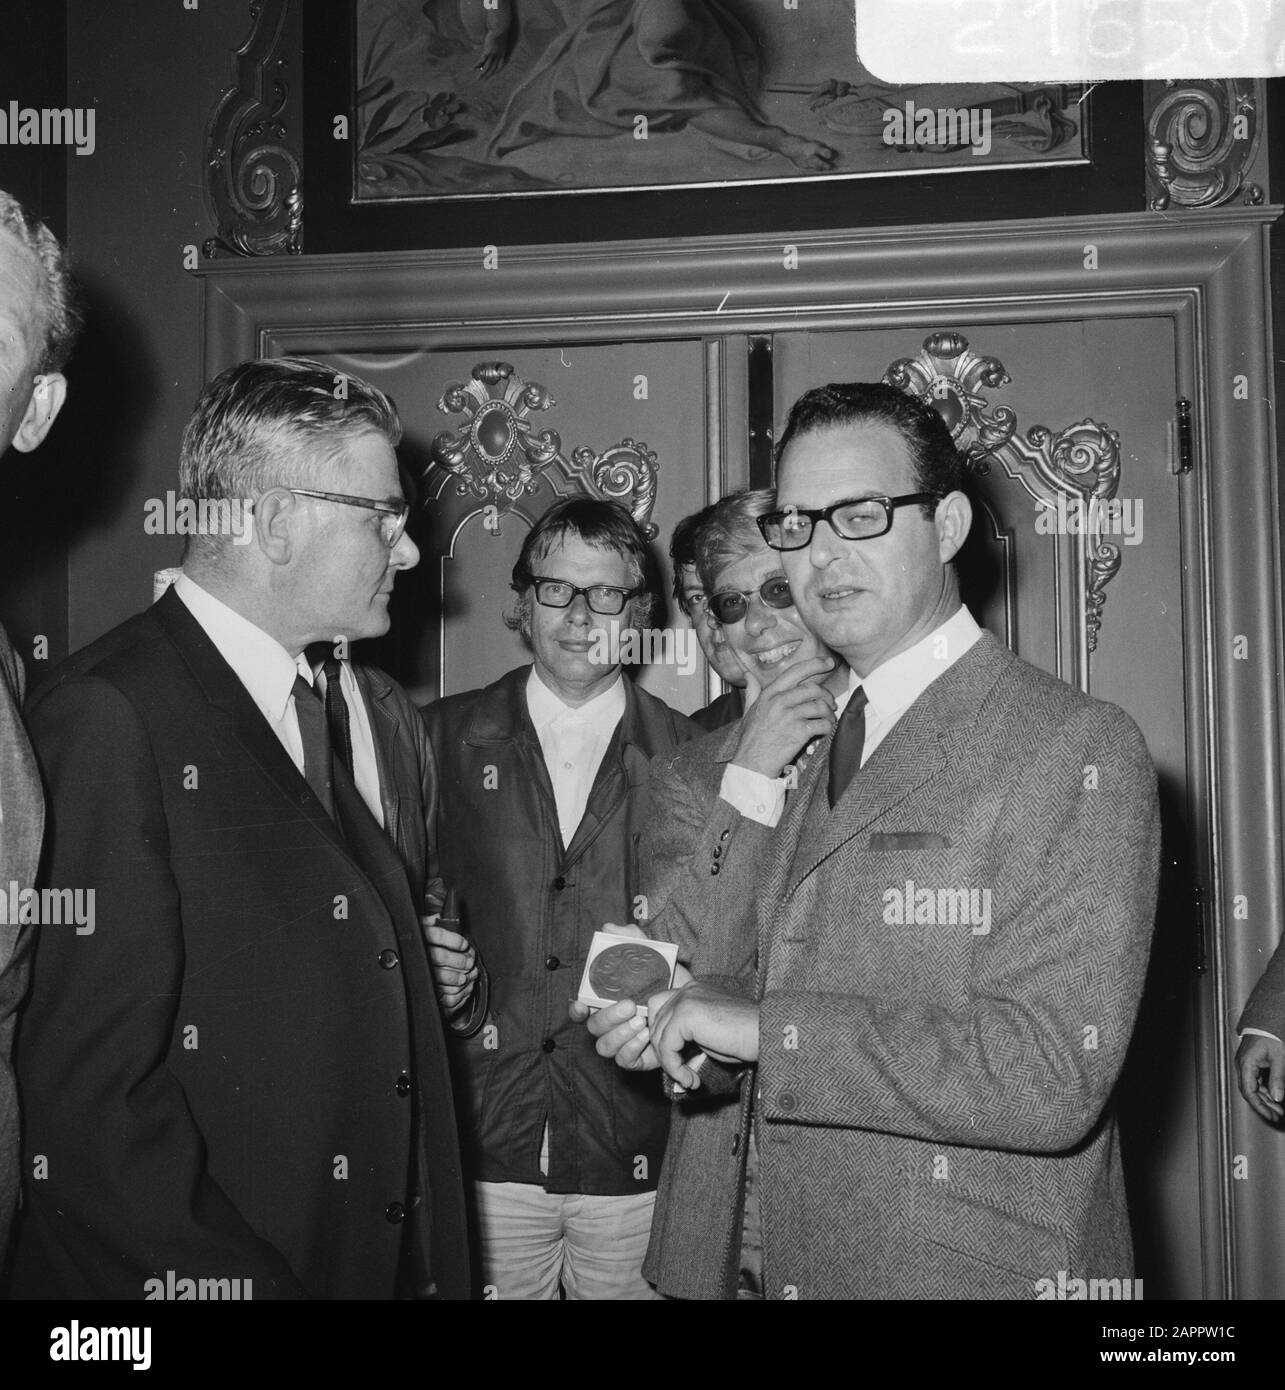 Award of the Criticism Prize to theatre group Center  Vlnr. A. Deering (Chairman Circle van Toneelcriteri, Carel Alphenaar (2nd dramaturg), W. Kous (director), Egbert van Paridon (director of the Centre) Date: 4 September 1968 Keywords: directors, group portraits, awards, directors, chairmen Personal name: Alphenaar, Carel, Deering, A., Kous, Walter, Paridon, Egbert van Stock Photo